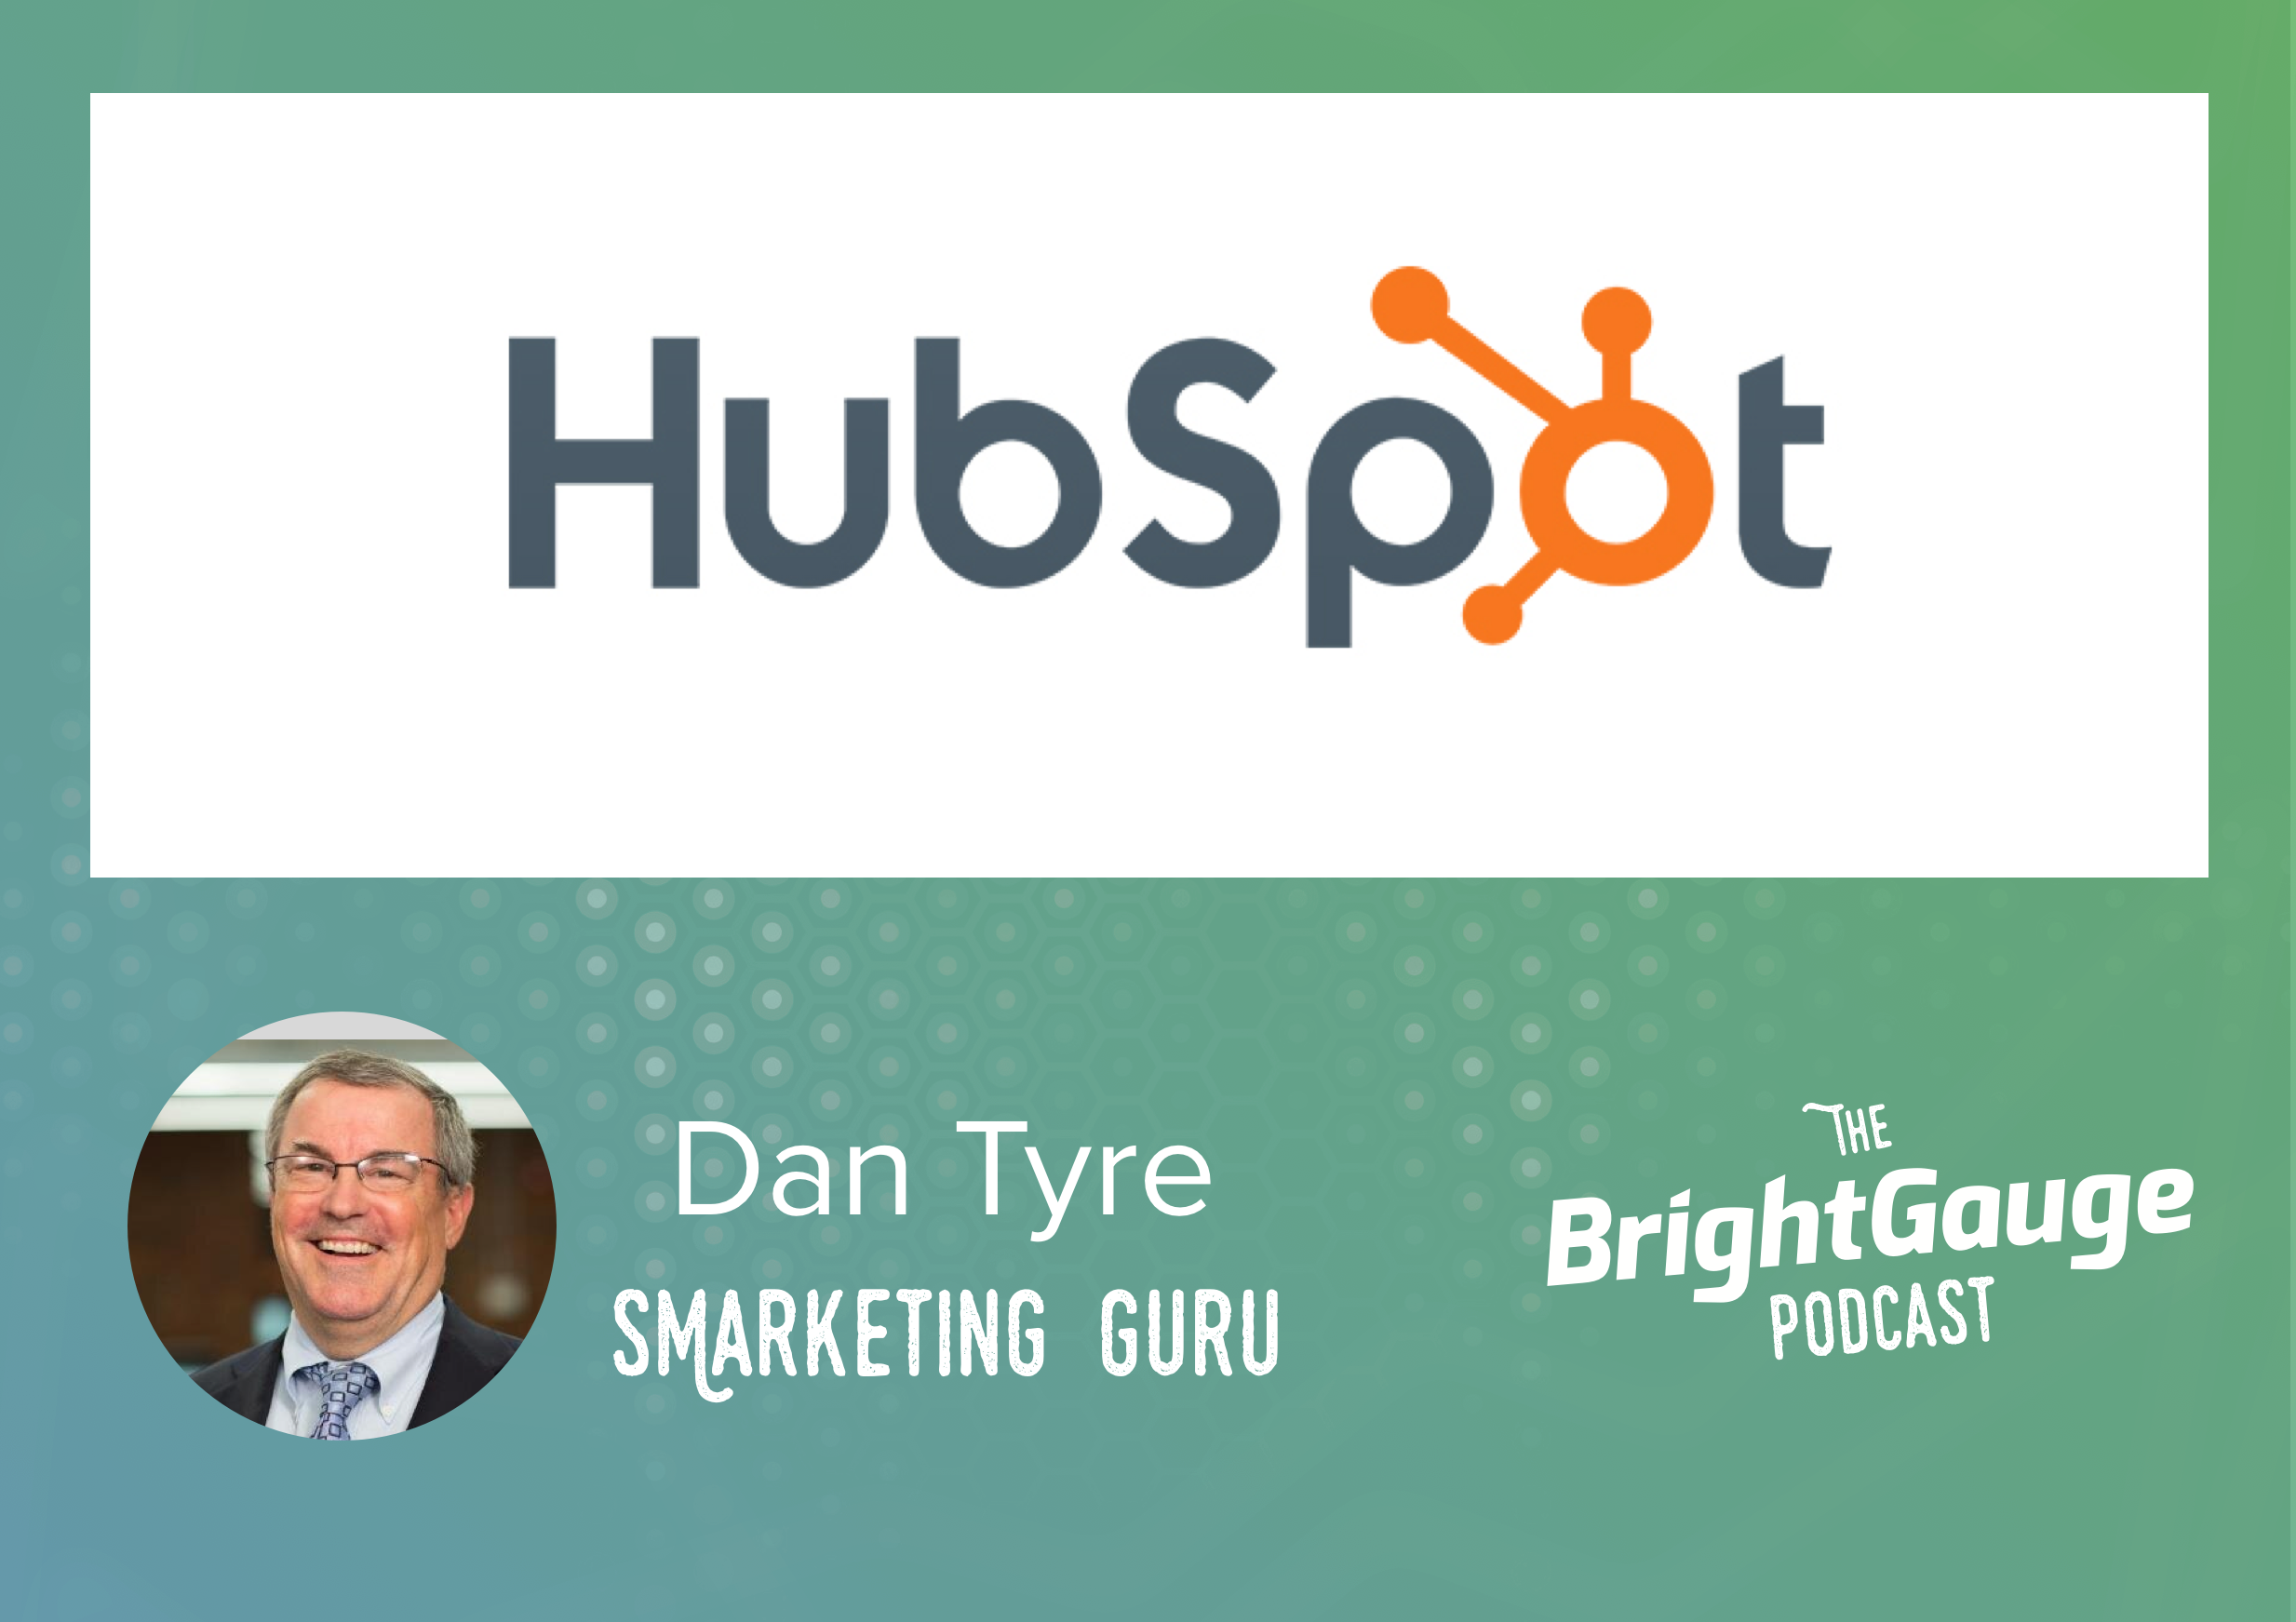 [Podcast] Episode 13 with Dan Tyre of HubSpot